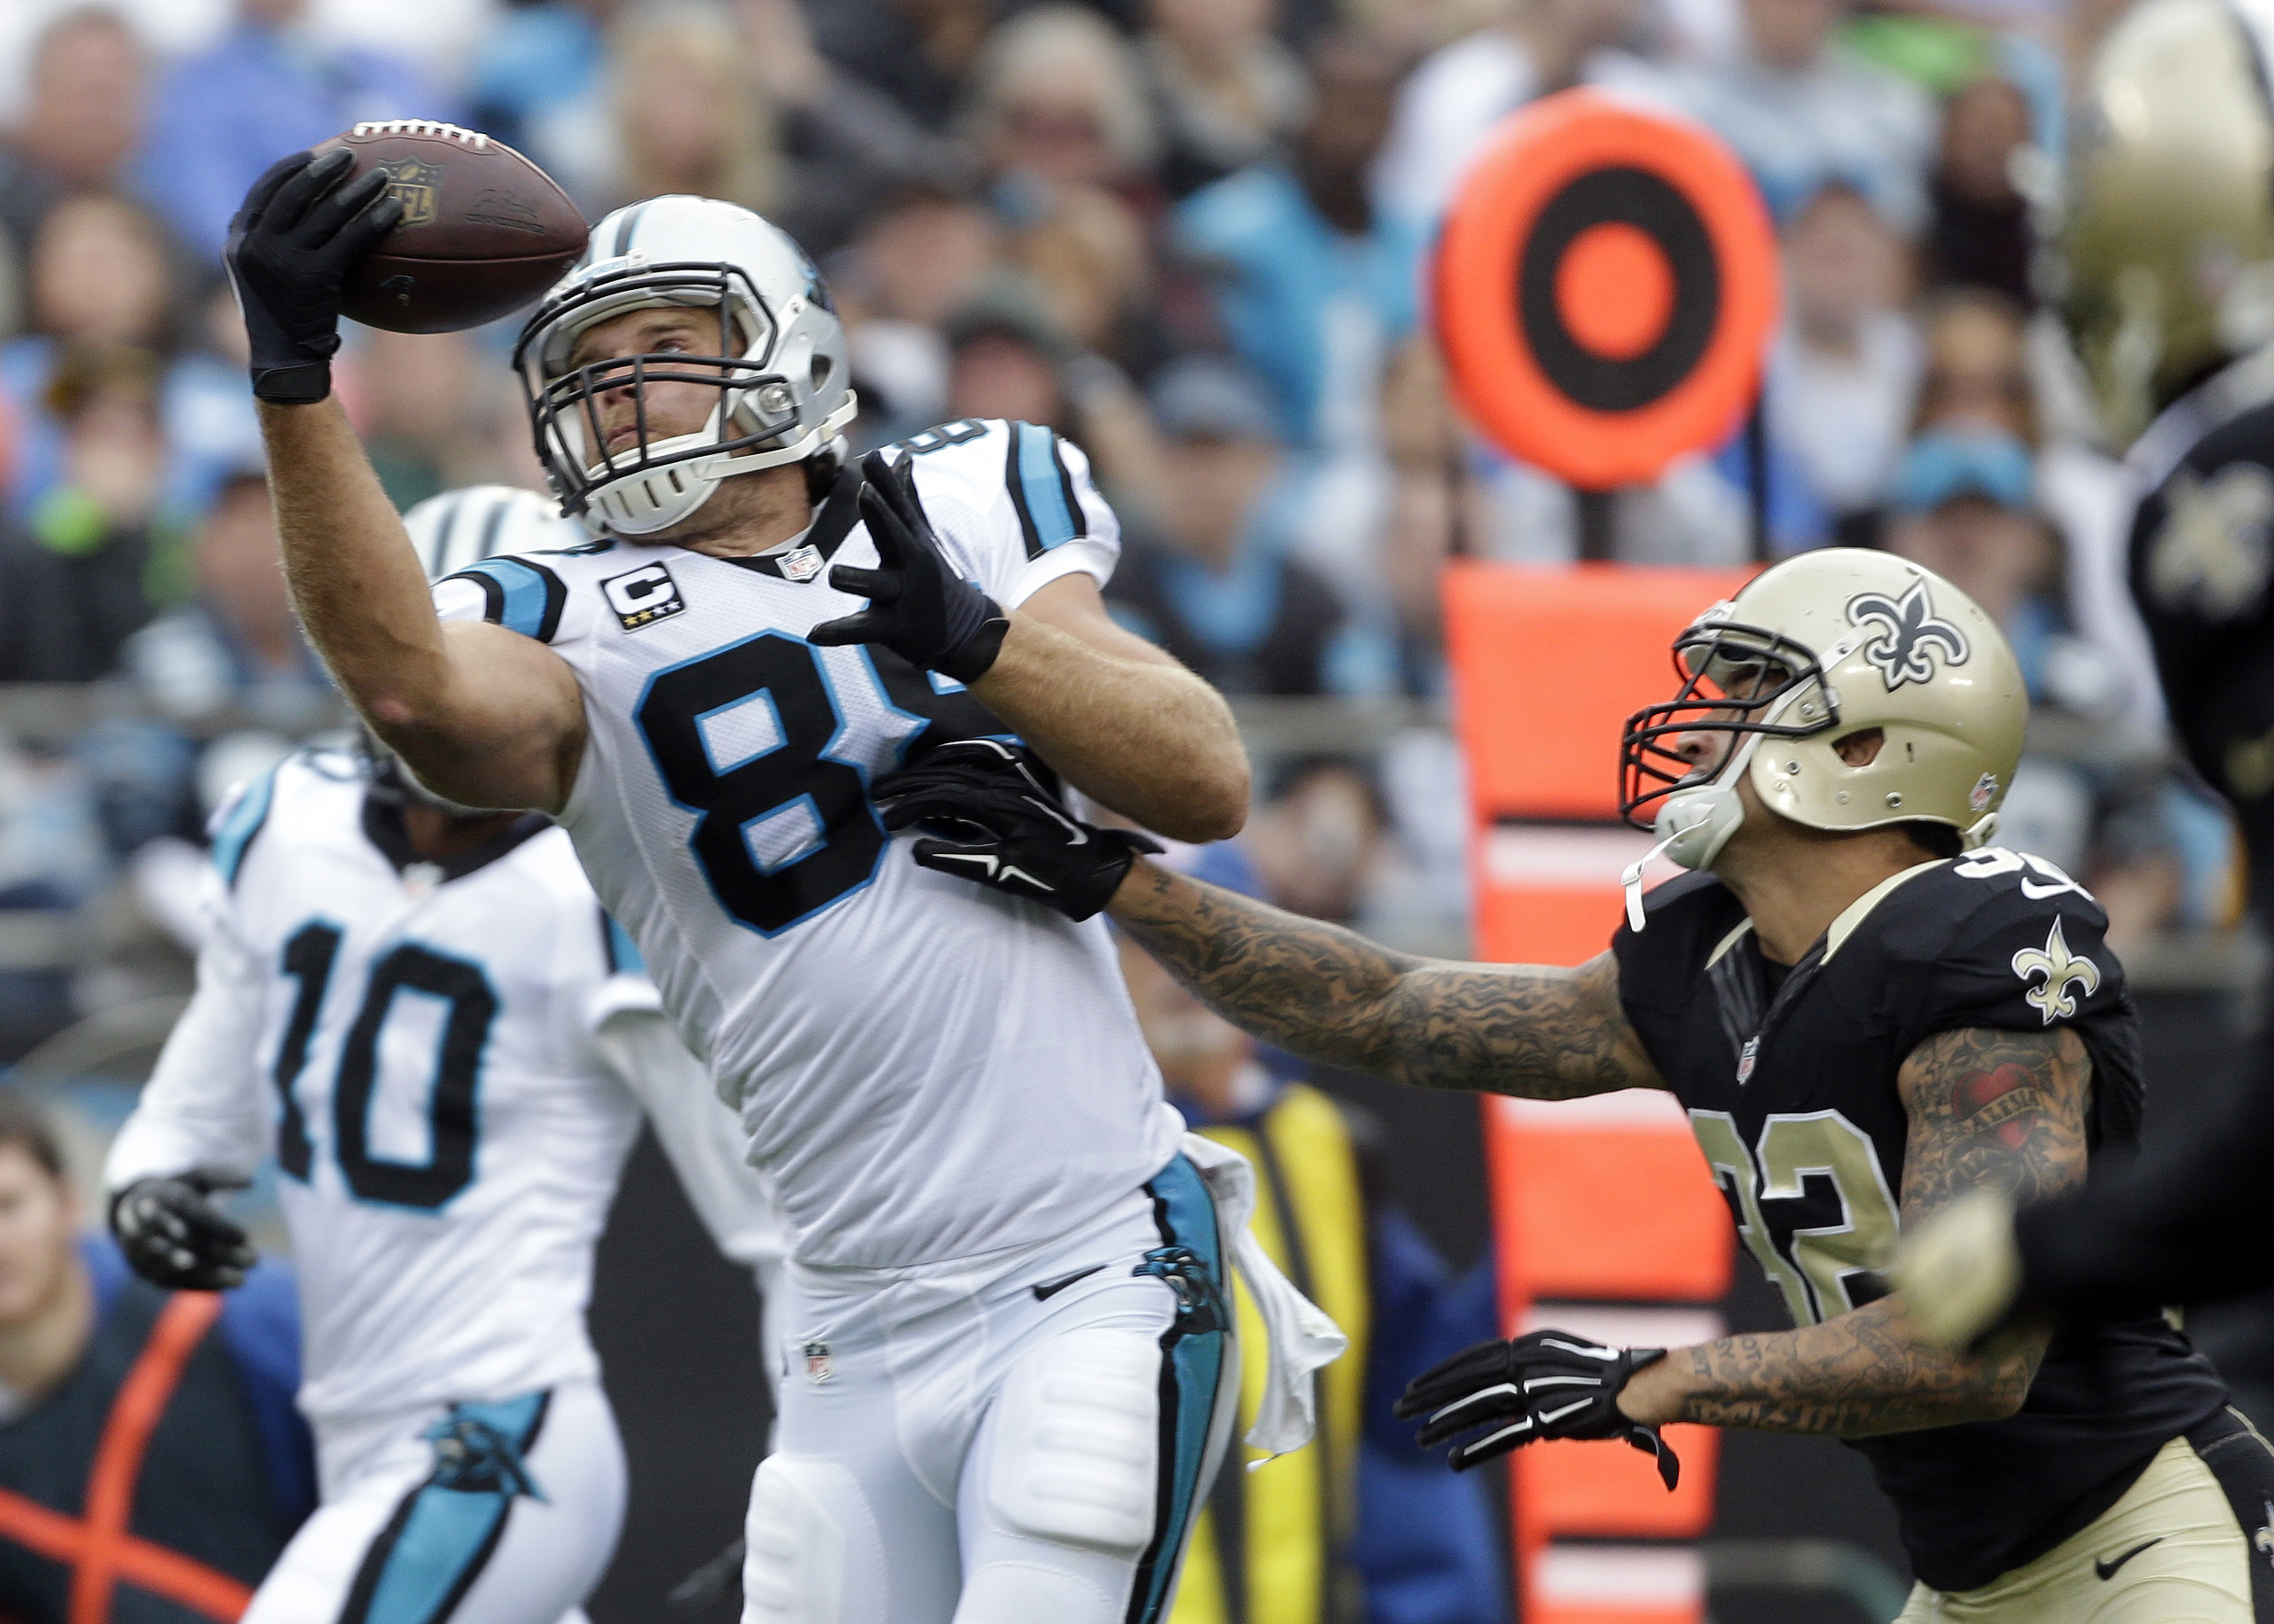 Carolina Panthers' Greg Olsen (88) catches a pass as New Orleans Saints' Kenny Vaccaro (32) defends in the first half of an NFL football game in Charlotte, N.C., Sunday, Sept. 27, 2015. (AP Photo/Bob Leverone)